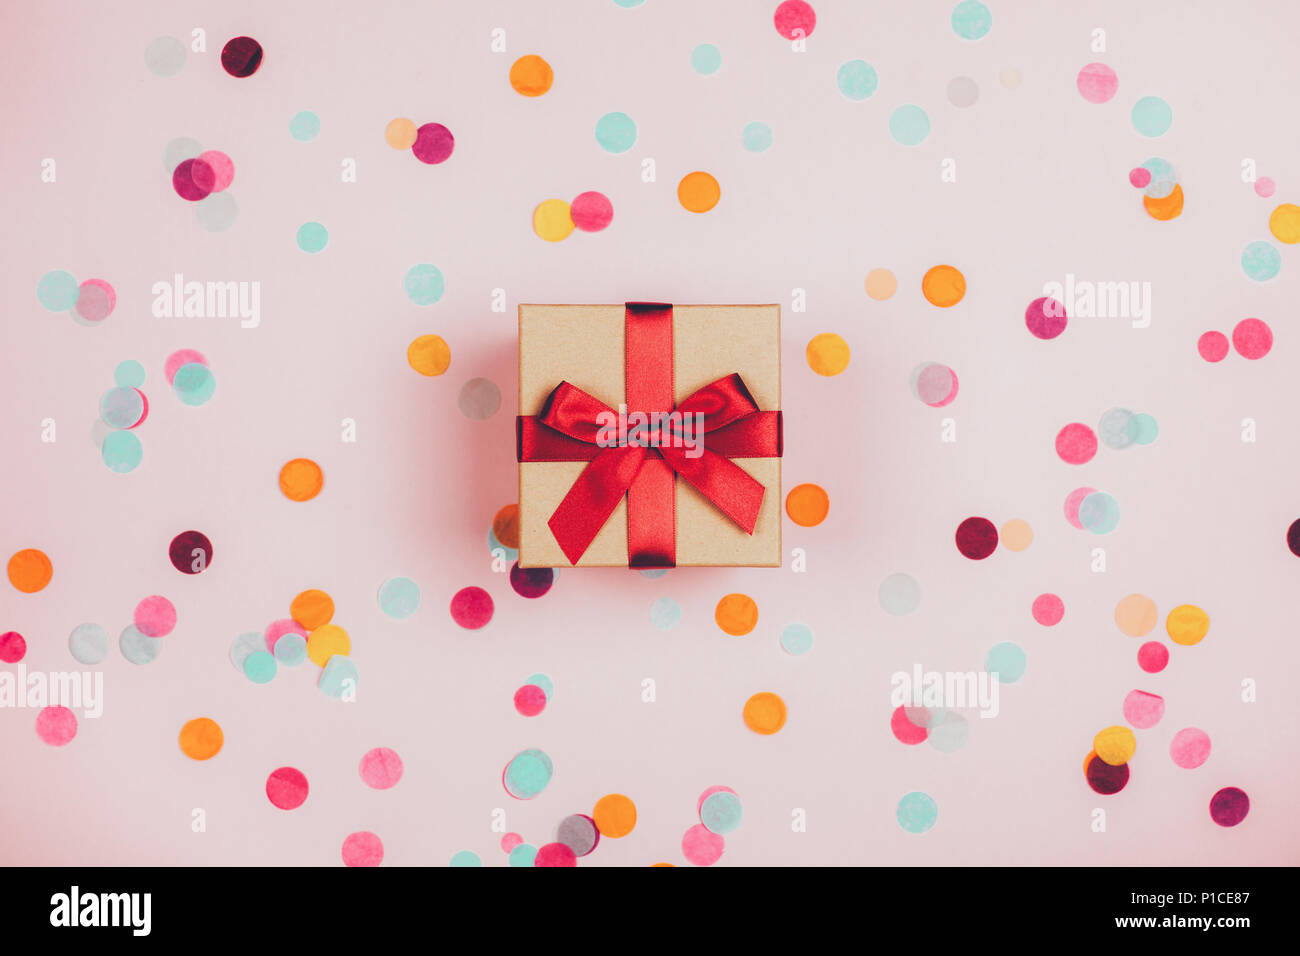 Present box with red bow - Stock Image